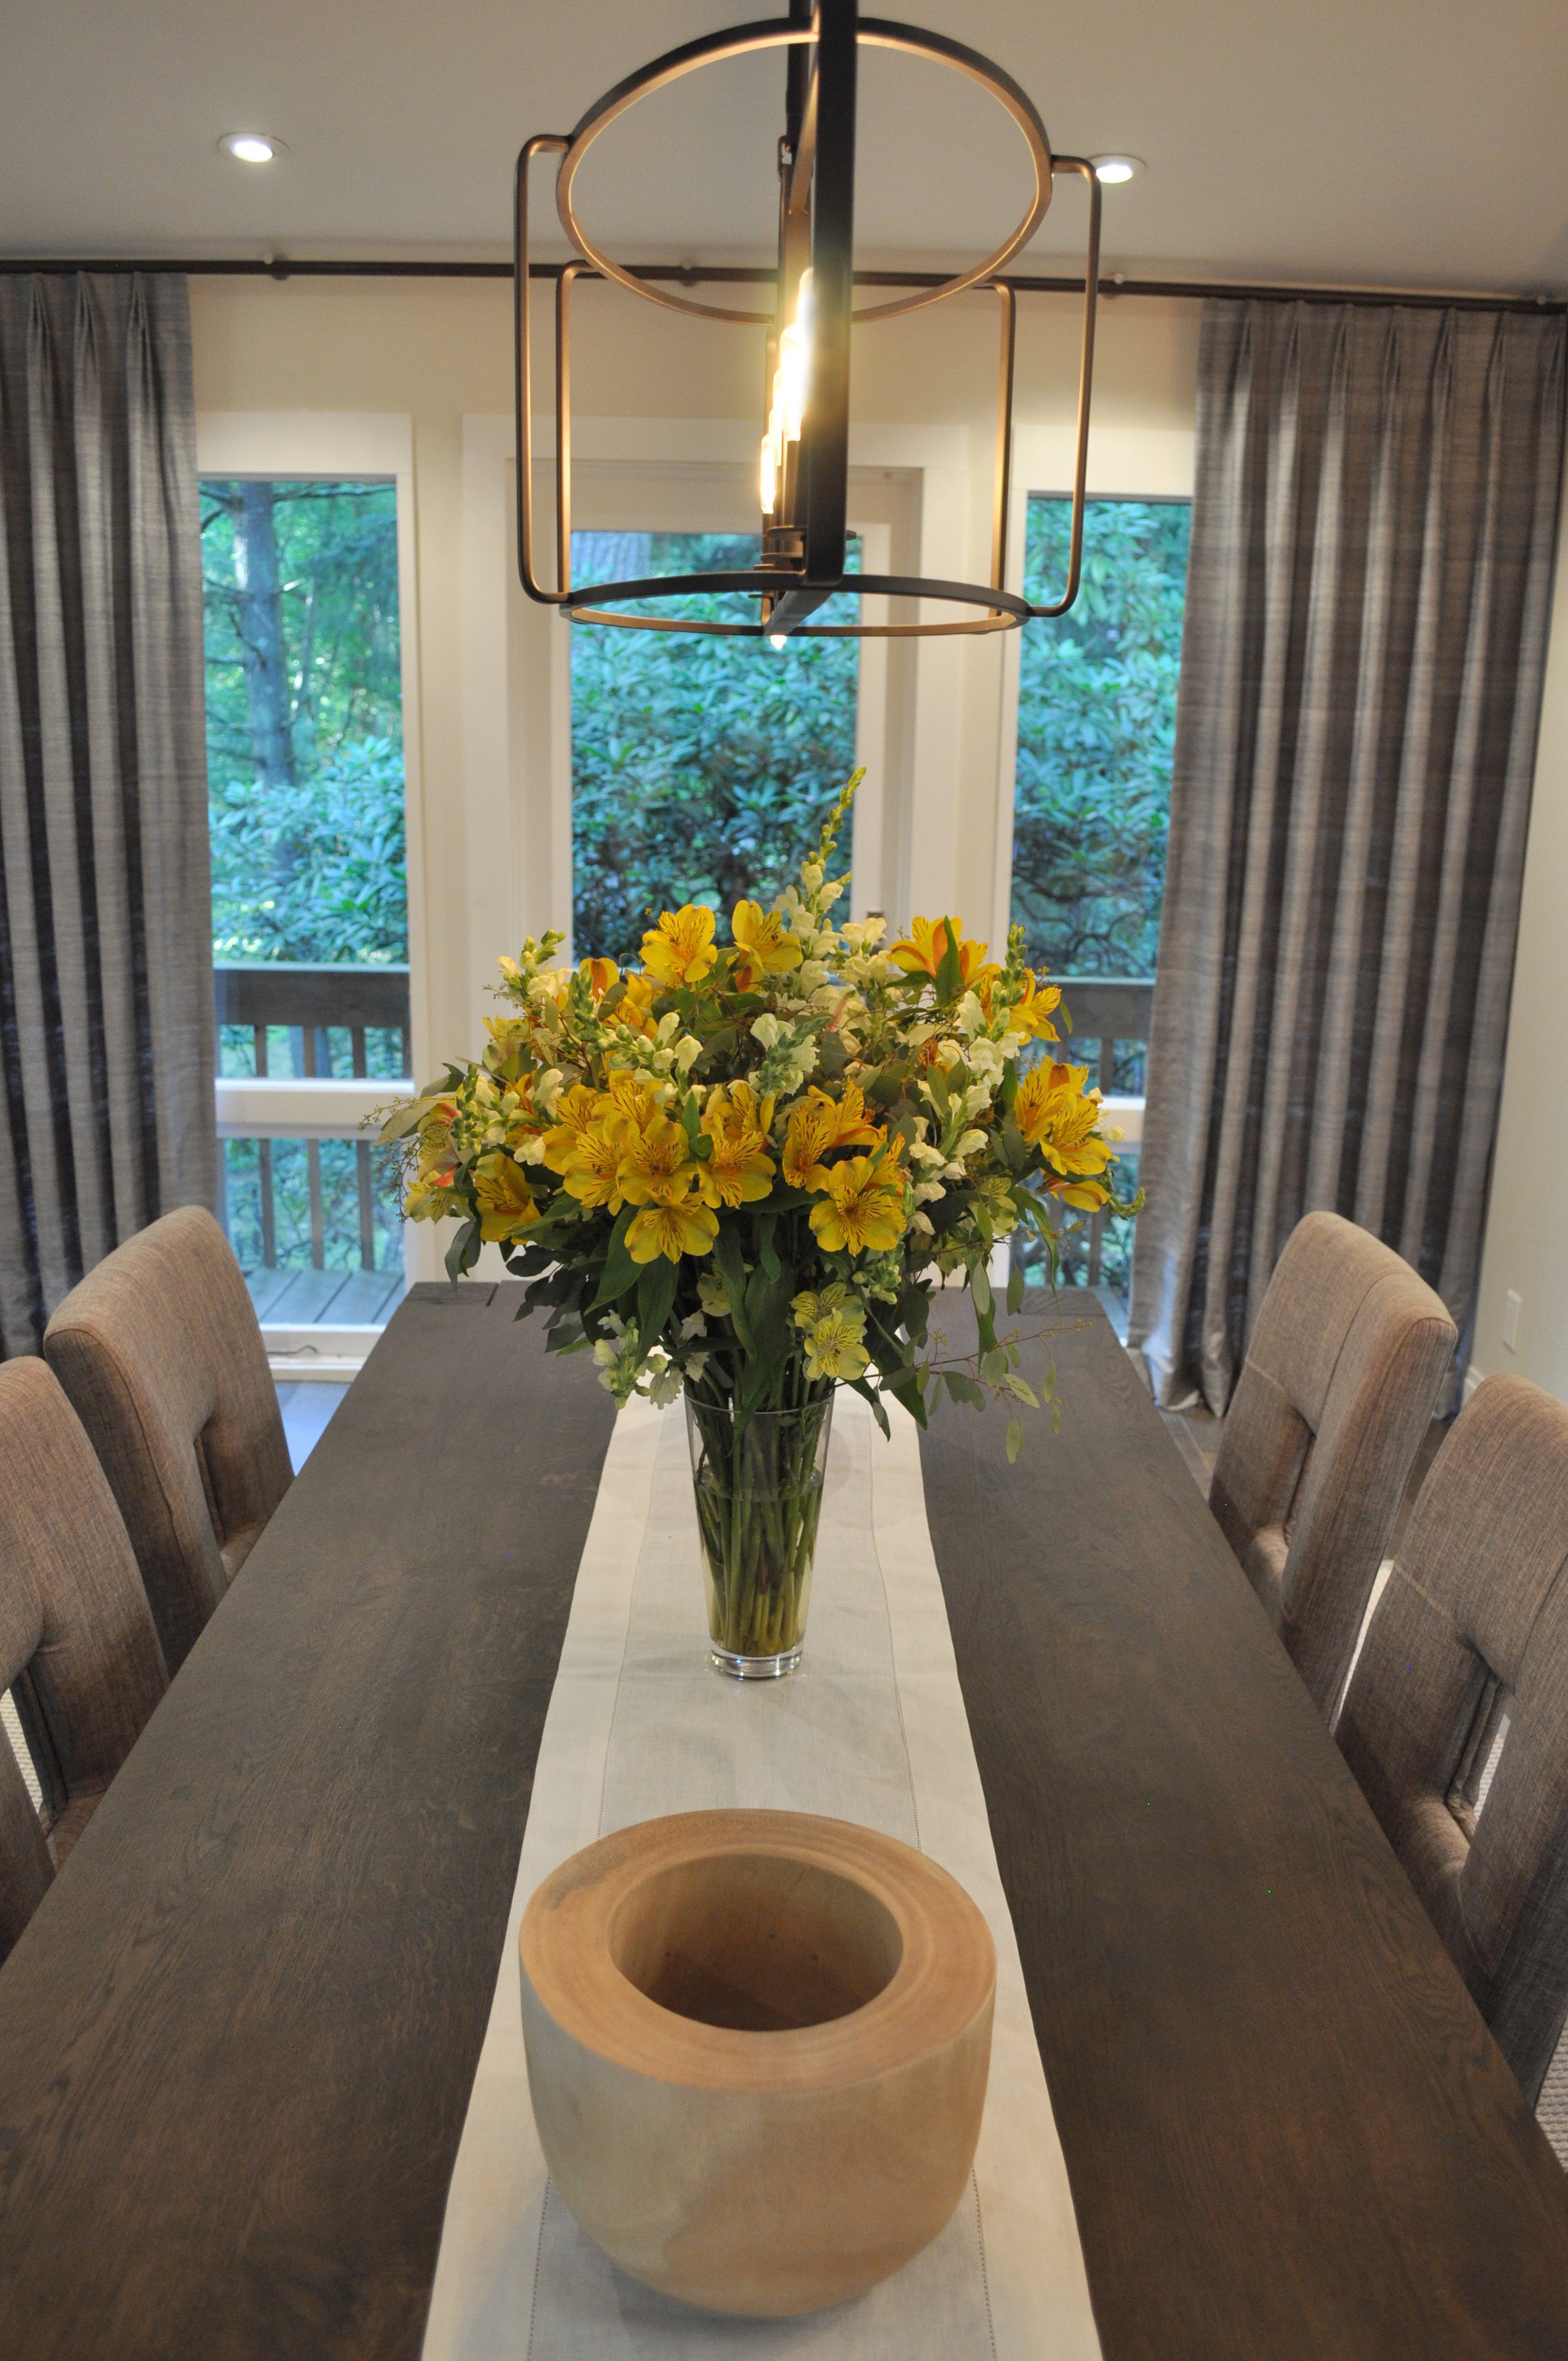 Kim A Mitchell_Design Lead_The Property Brothers_Season 6_Episode 9_Modern Dining Room_Close-up Dining Table_Iron Pendant Light_2017.jpg